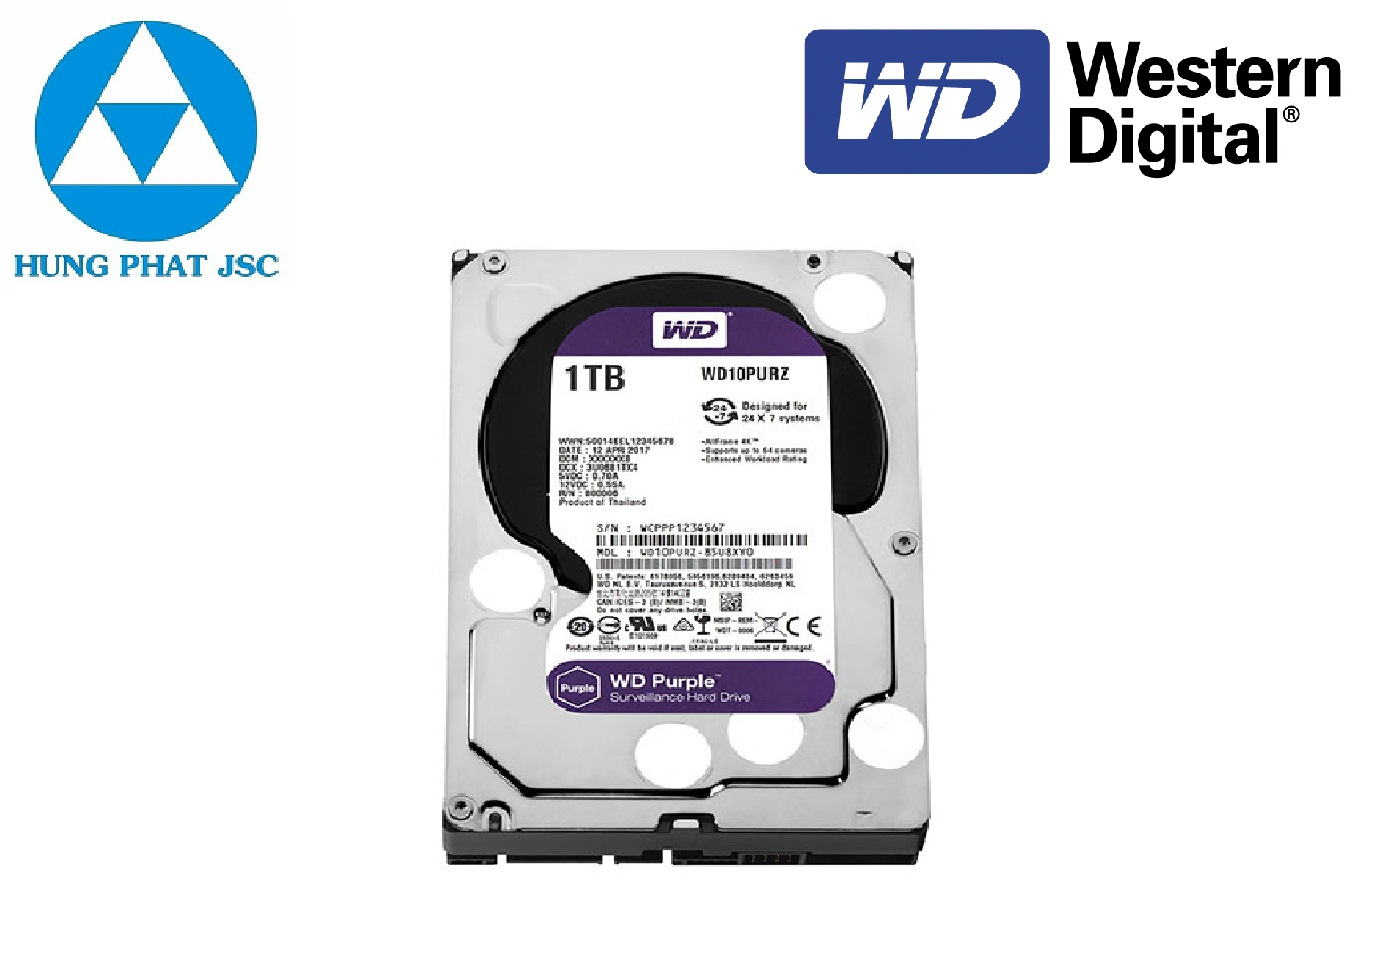 WESTERN DIGITAL HDD PURPLE 1TB